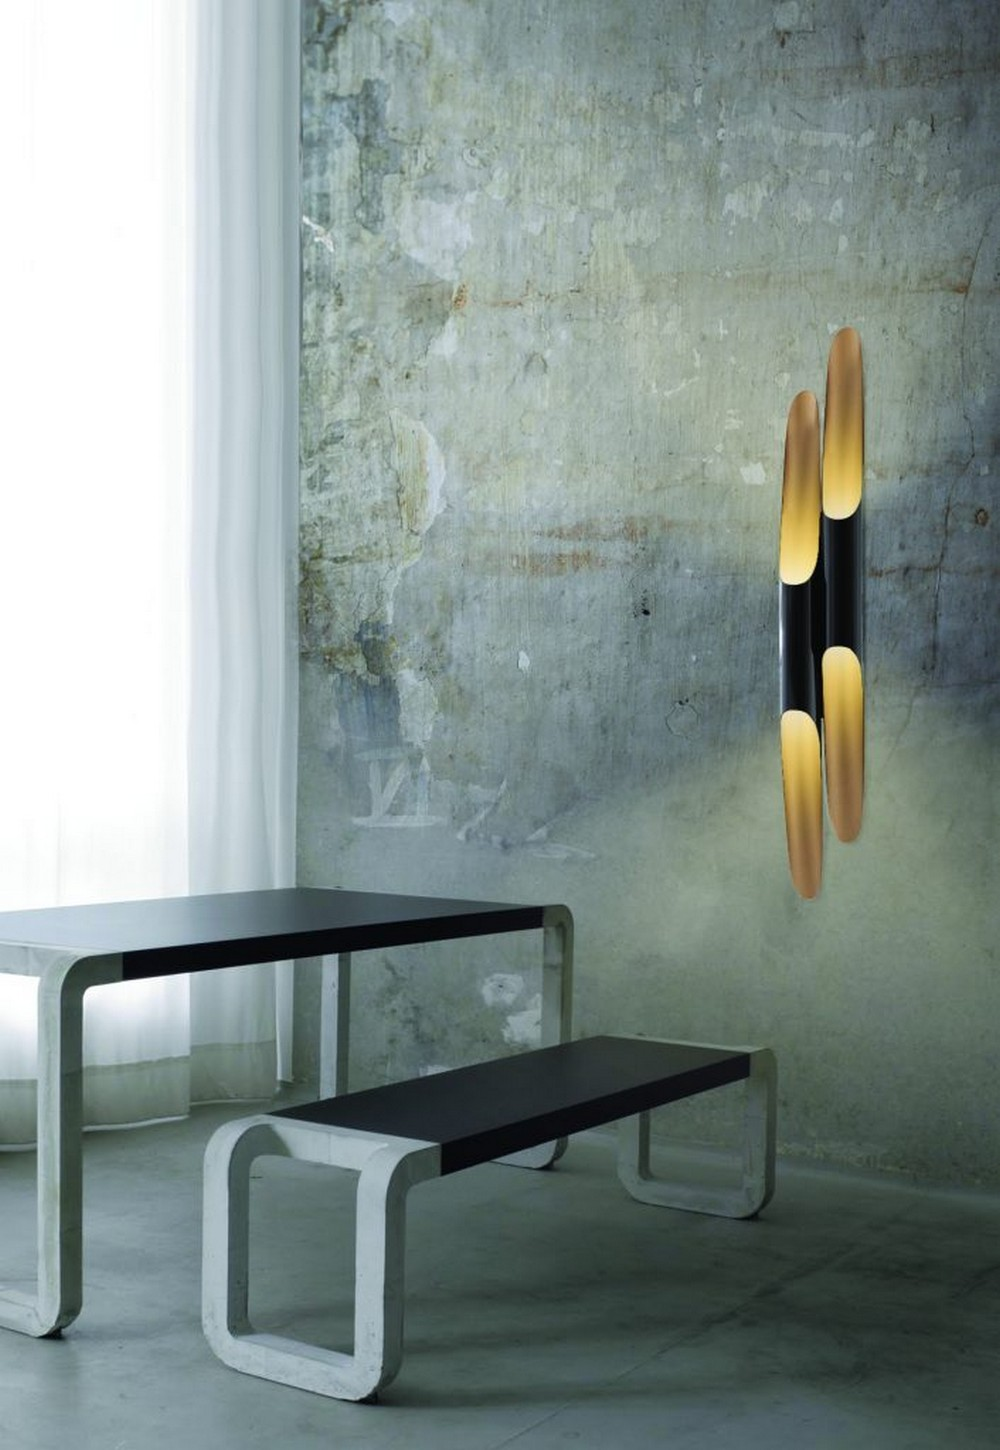 Meet The Perfect Lighting Fixtures For A Minimalistic Design Project Minimalistic Design Project Meet The Perfect Lighting Fixtures For A Minimalistic Design Project Meet The Perfect Lighting Fixtures For A Minimalistic Design Project 2